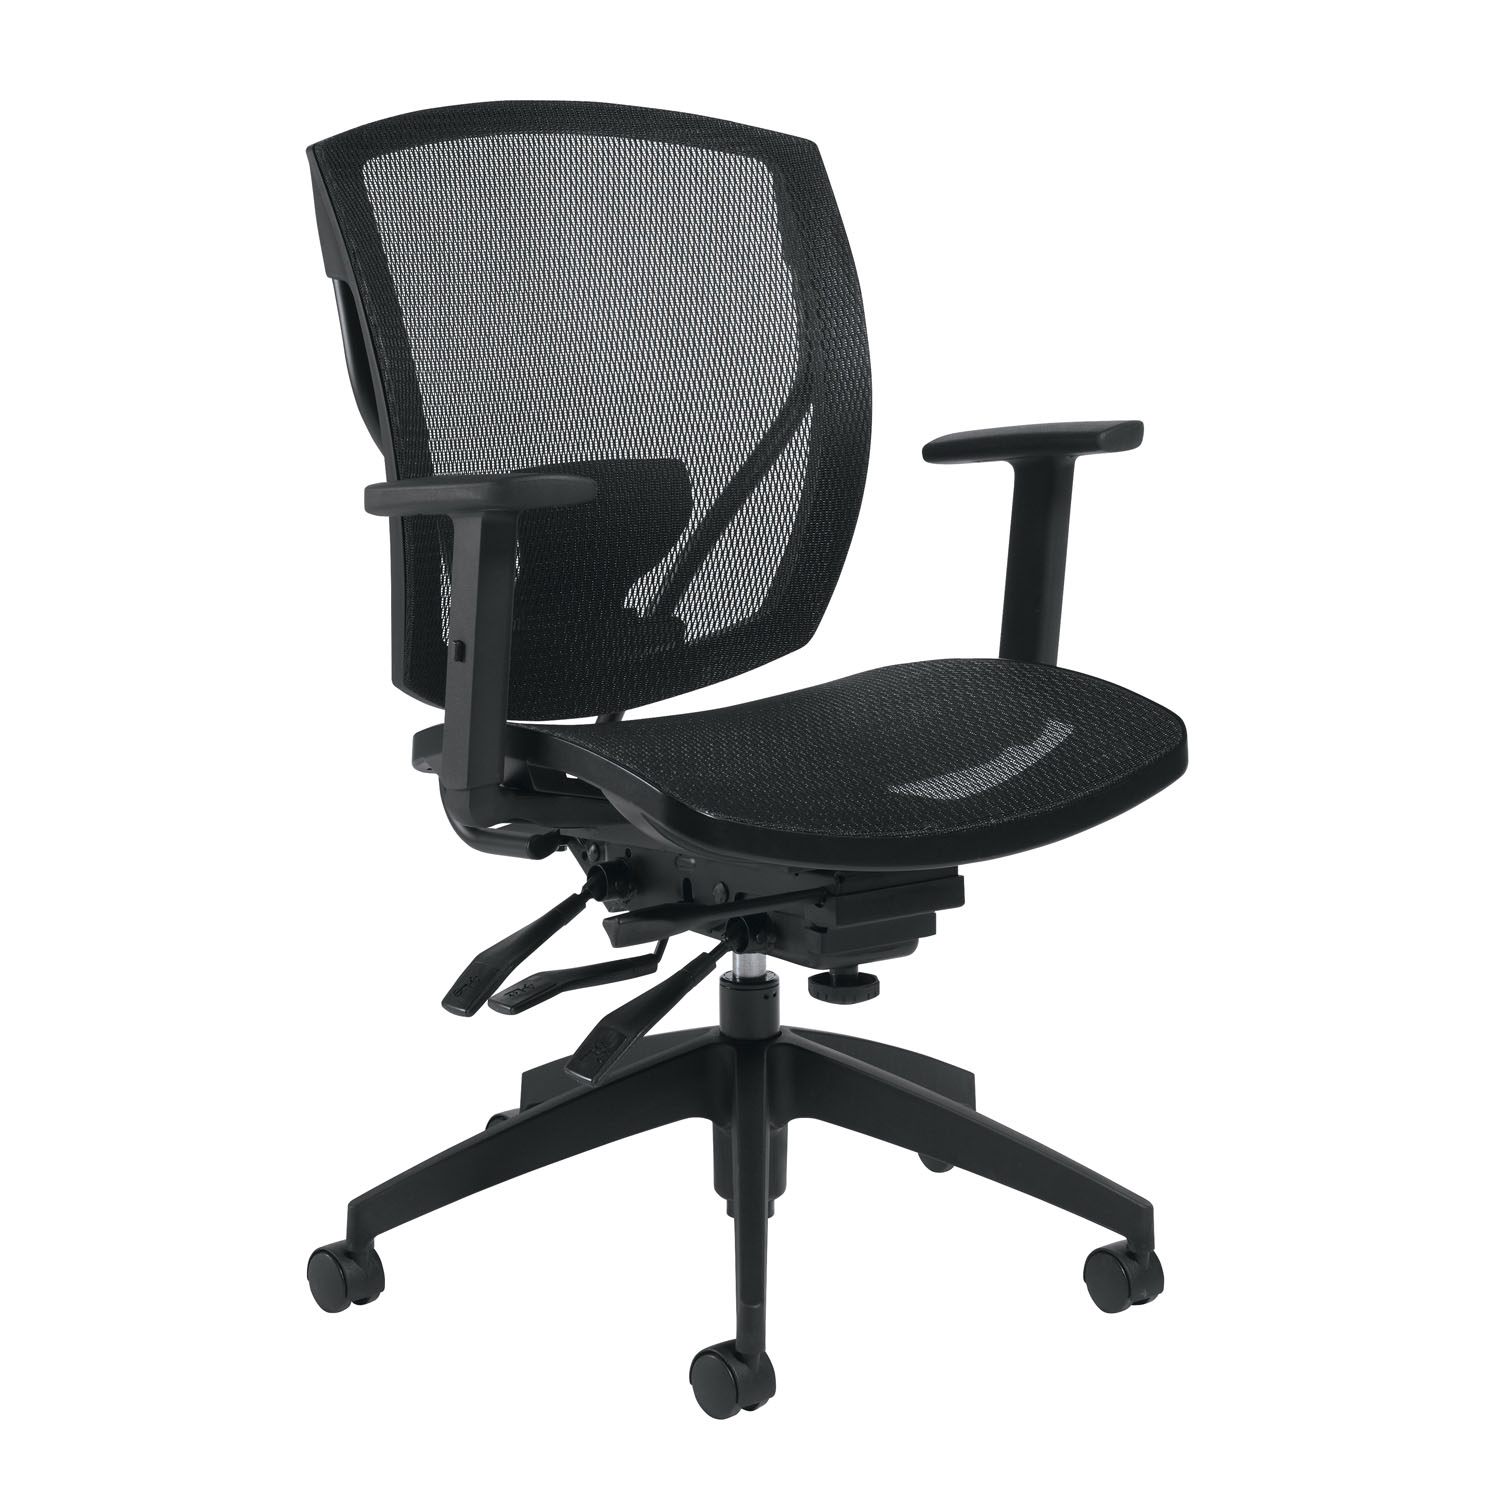 Go Chair Offices To Go Ibex Multi Tilter Chair Mid Back Black